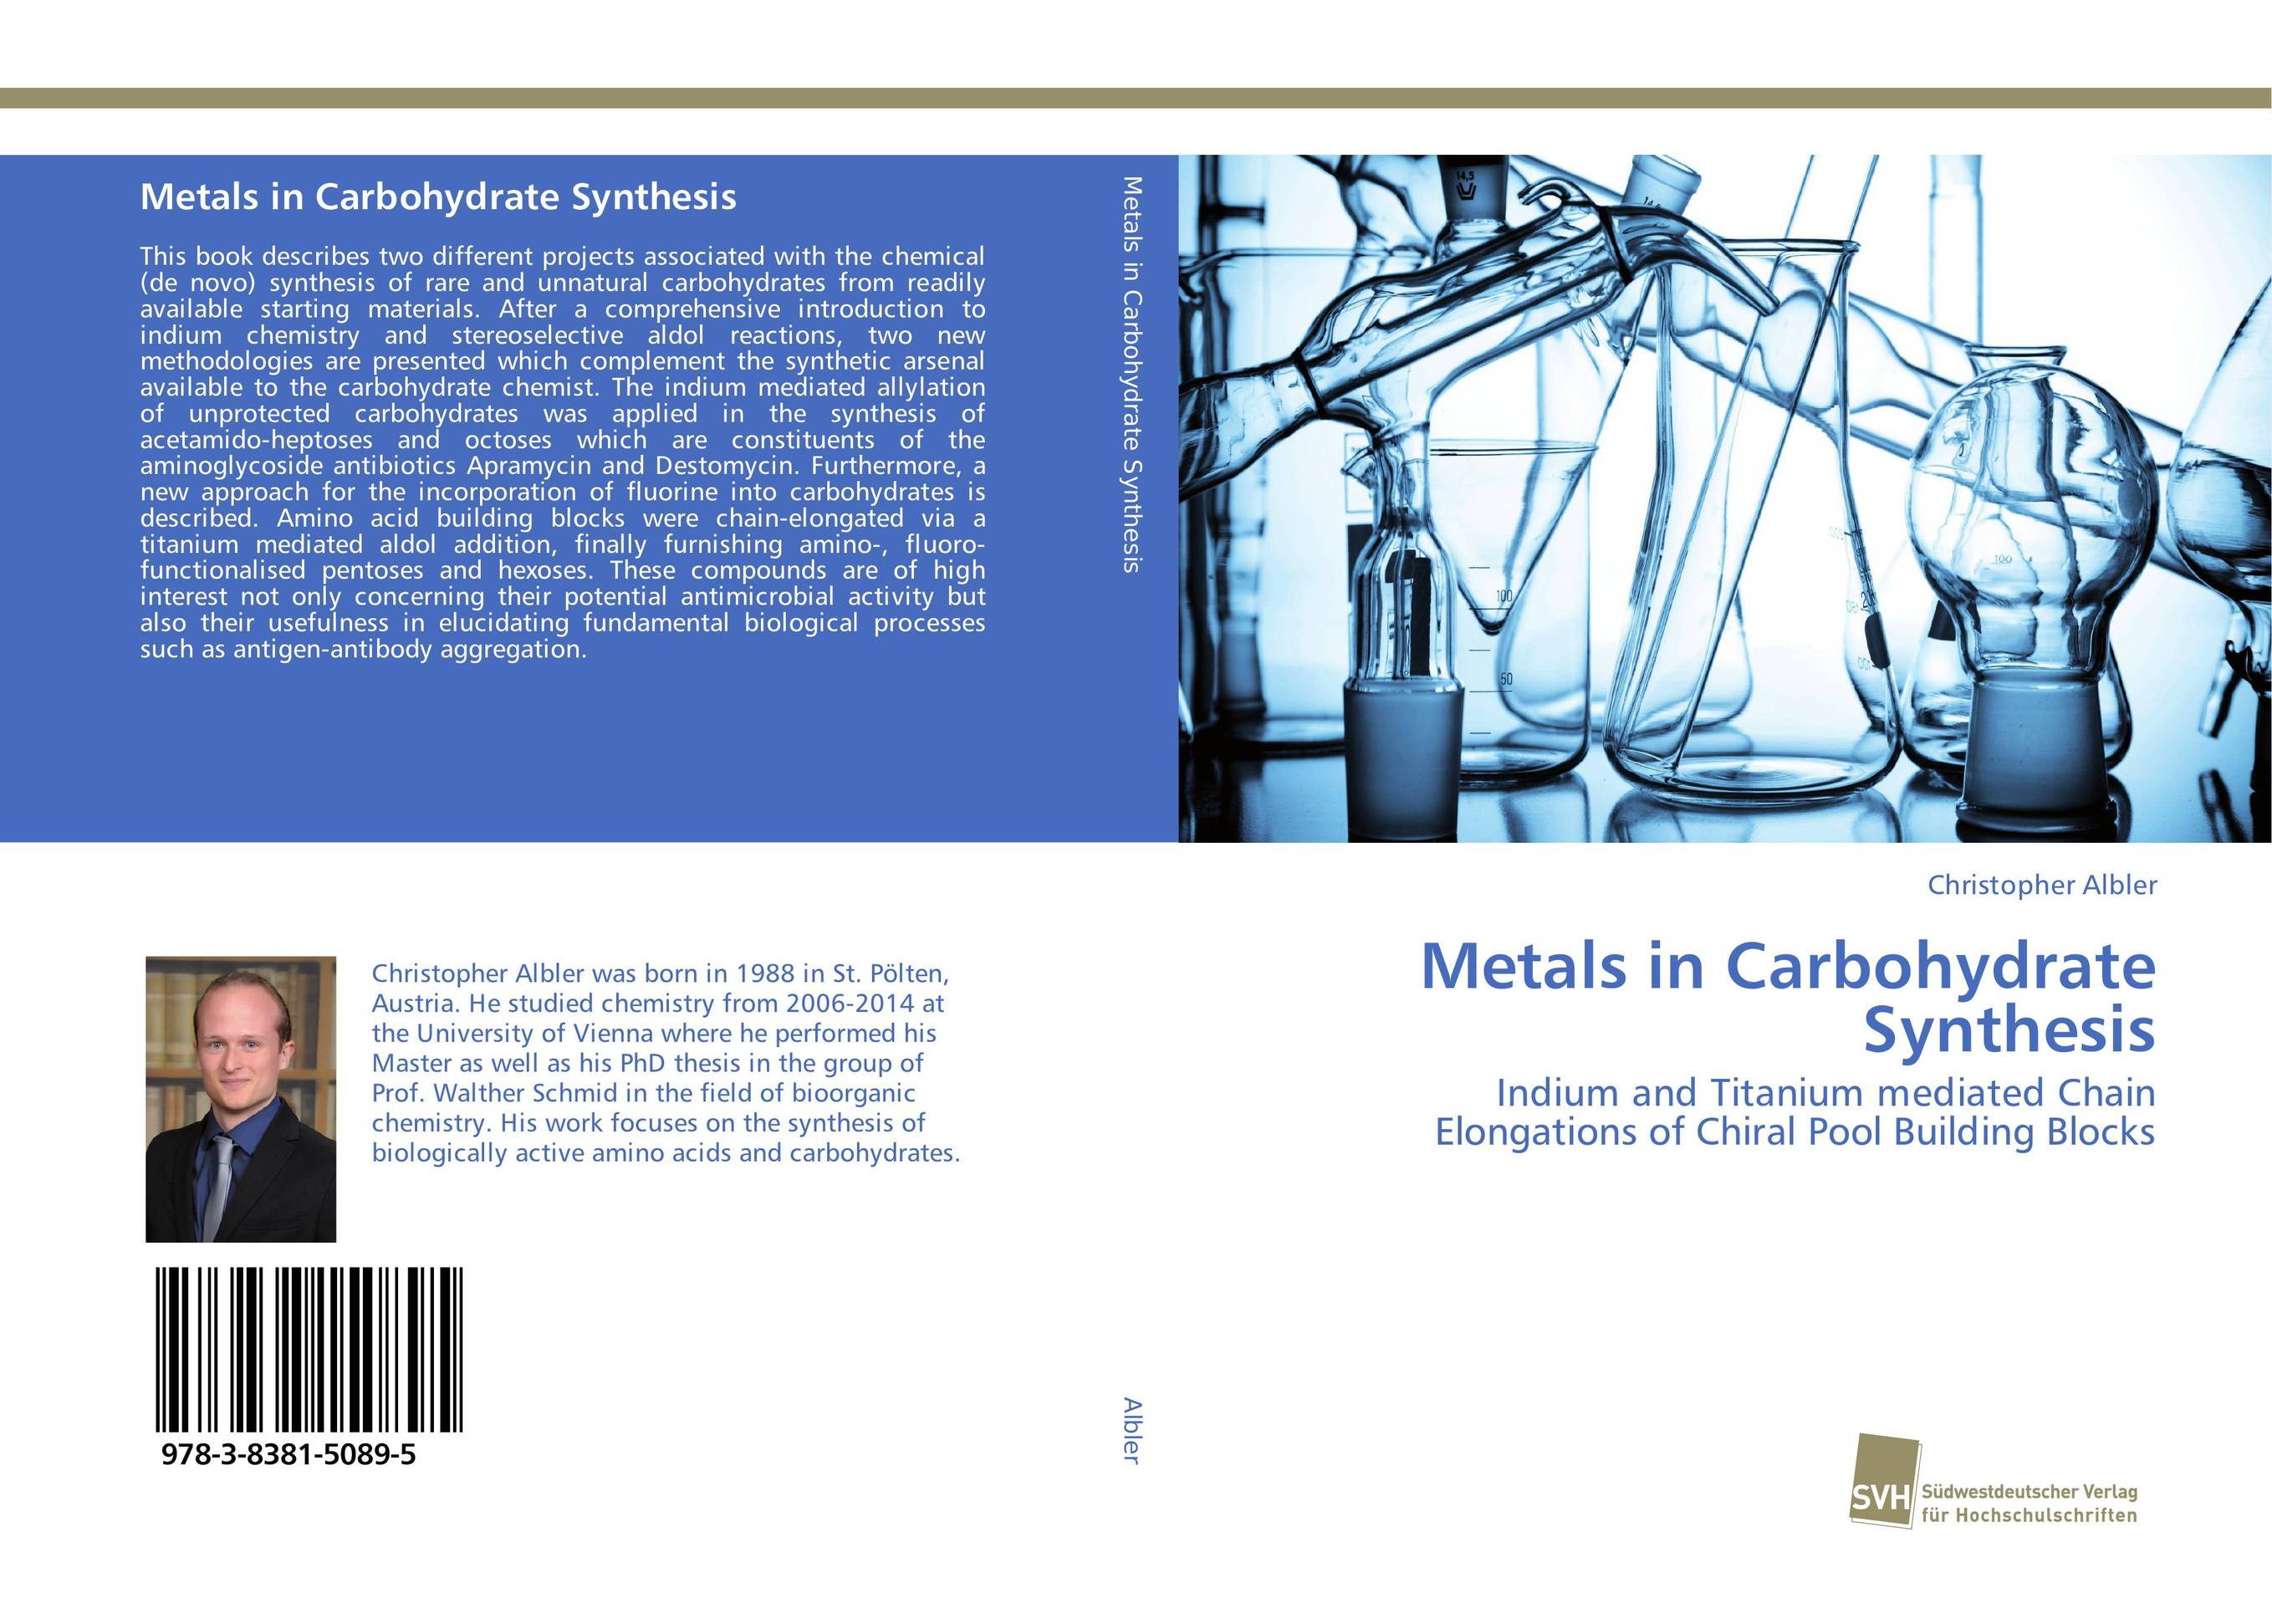 Metals in Carbohydrate Synthesis metals in carbohydrate synthesis